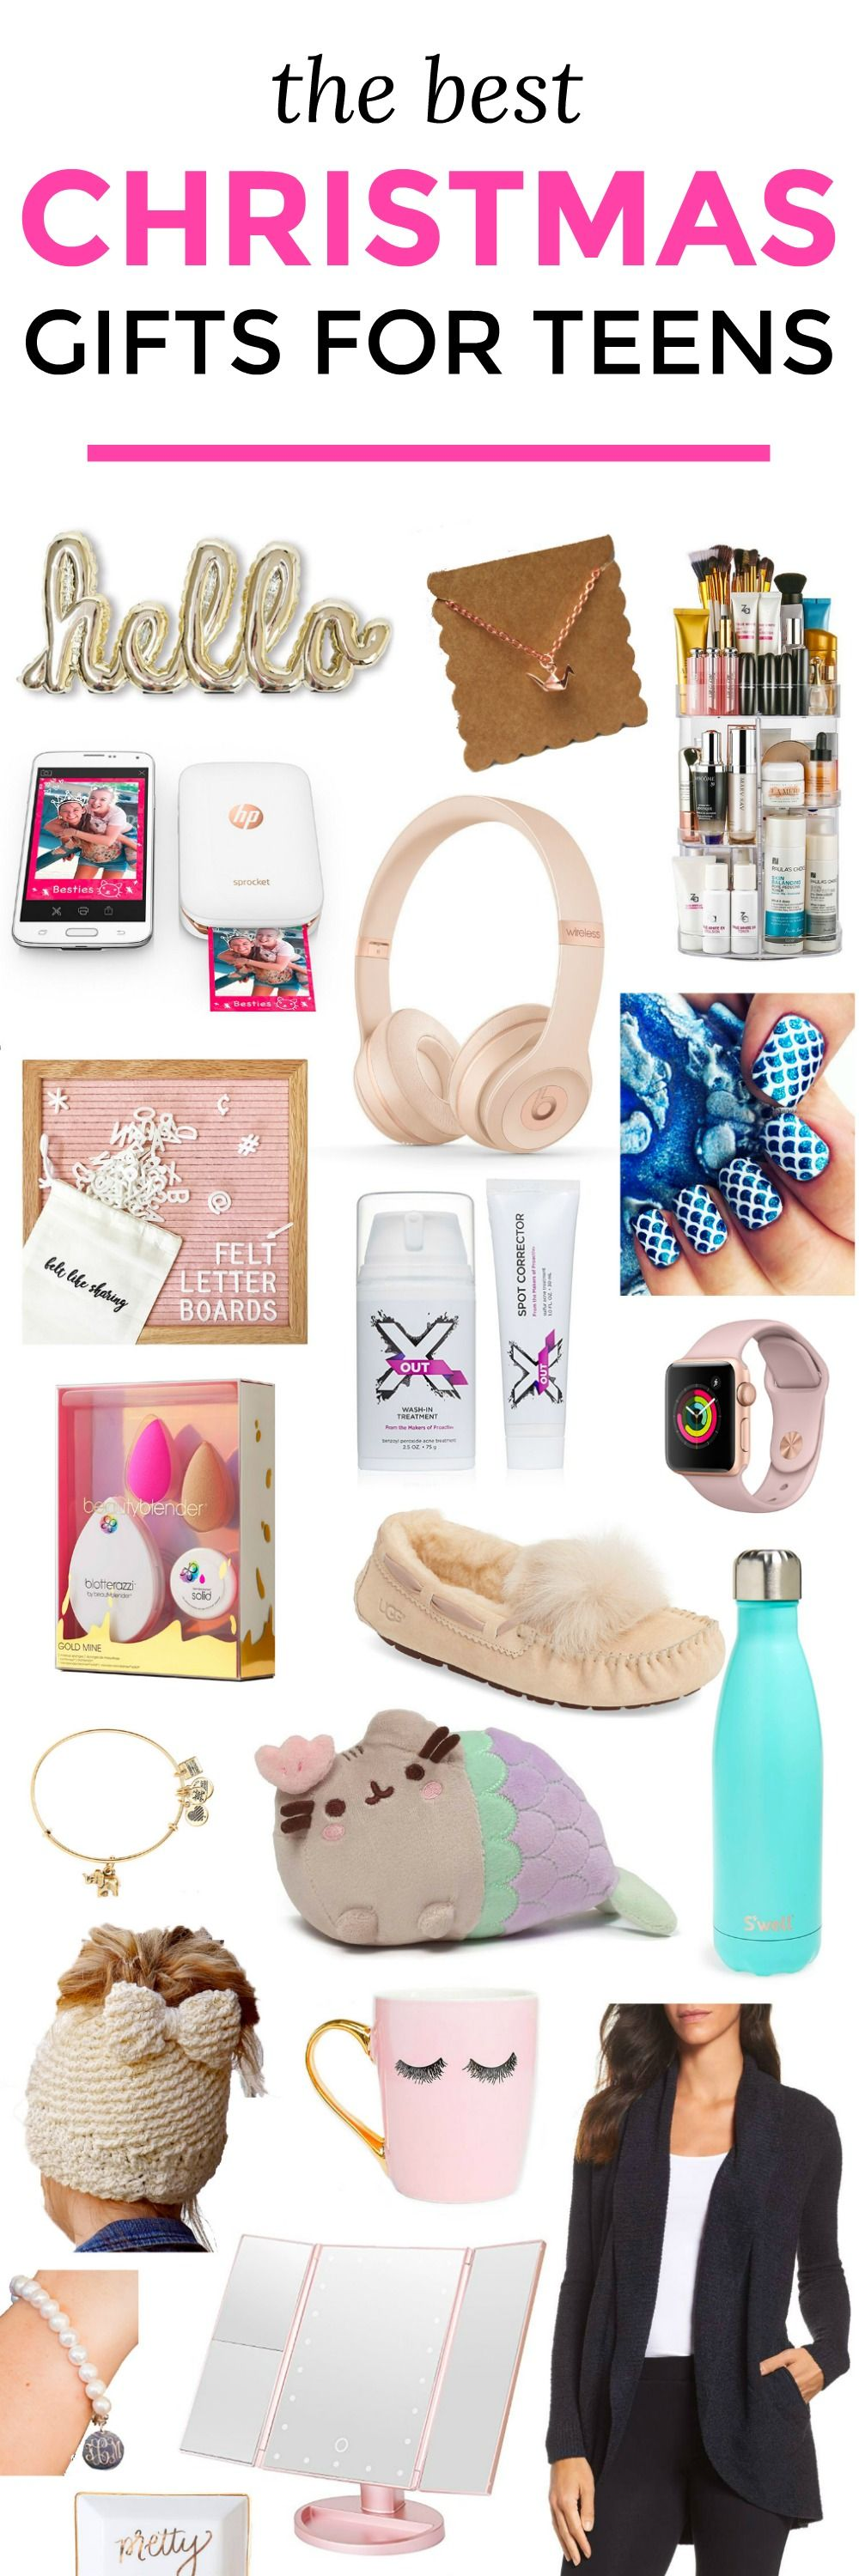 Top Gifts for Teens This Christmas   Fashion Trends + Tips ...